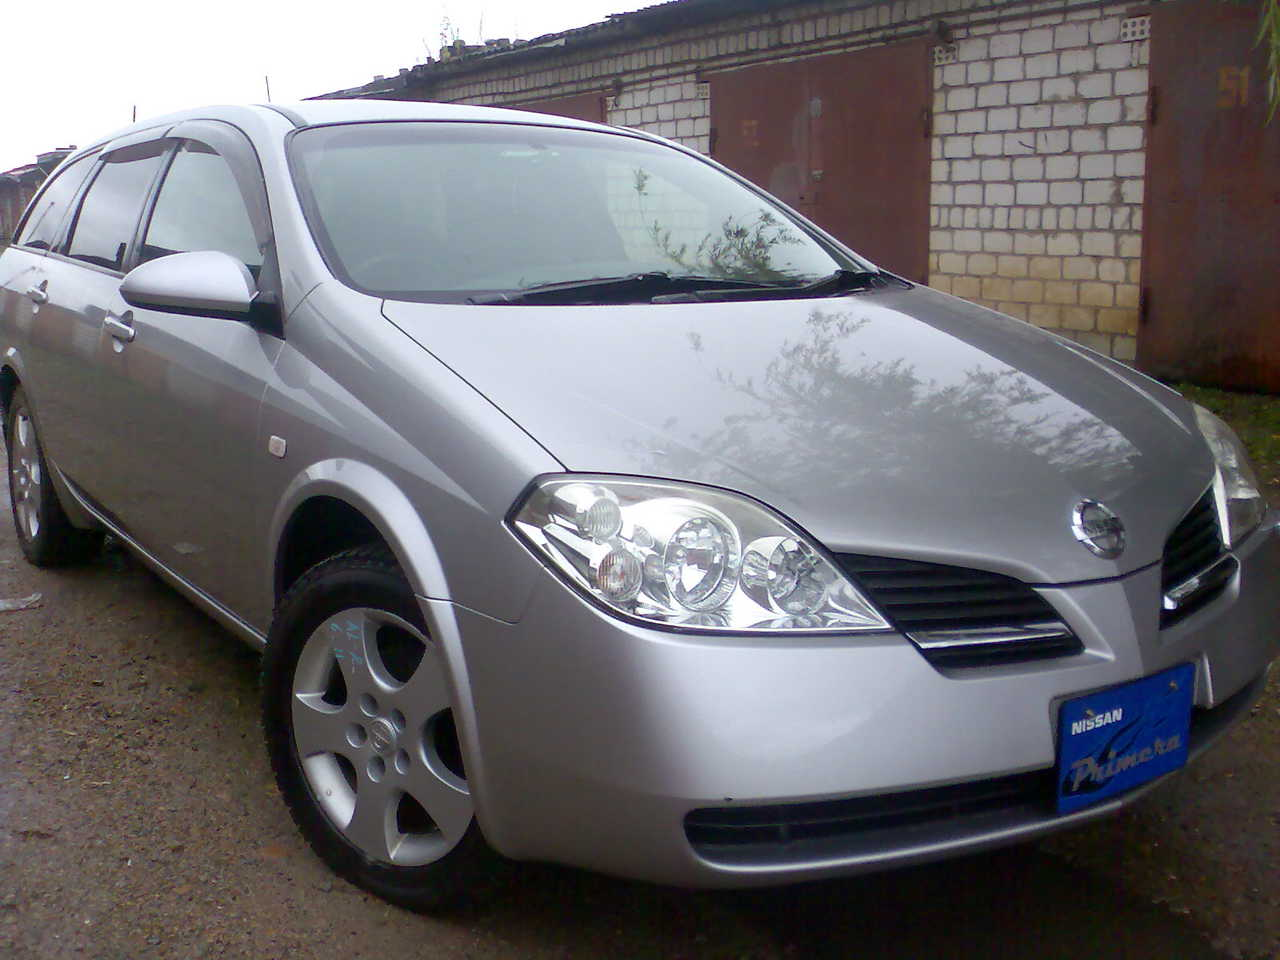 used 2002 nissan primera wagon photos 2 5 gasoline ff automatic for sale. Black Bedroom Furniture Sets. Home Design Ideas